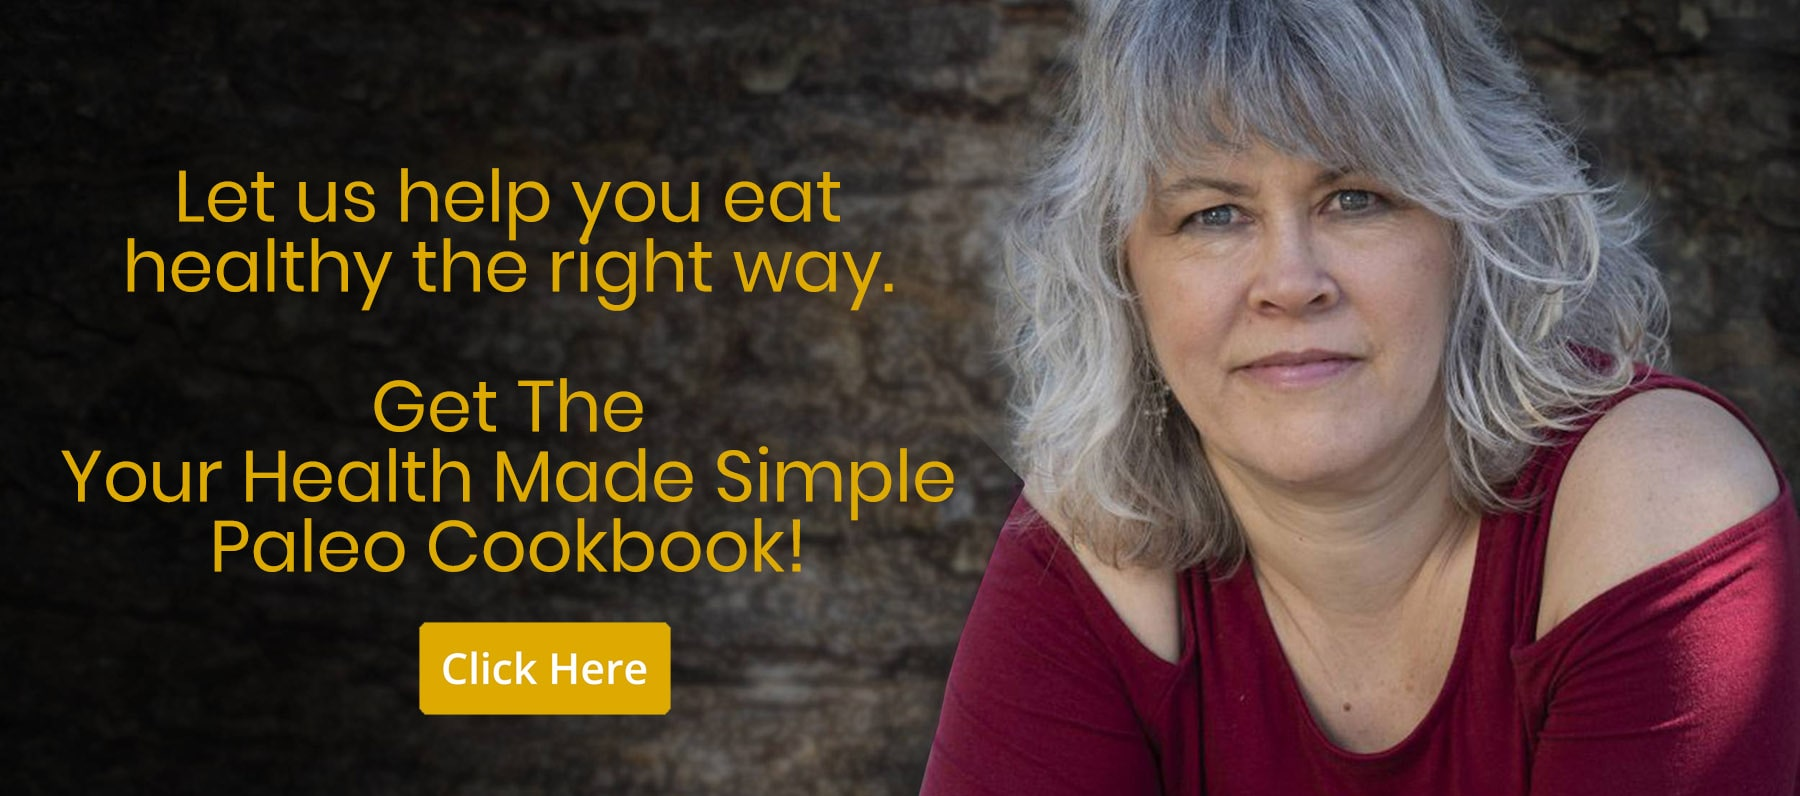 Get The Your Health Made Simple Paleo Cookbook!